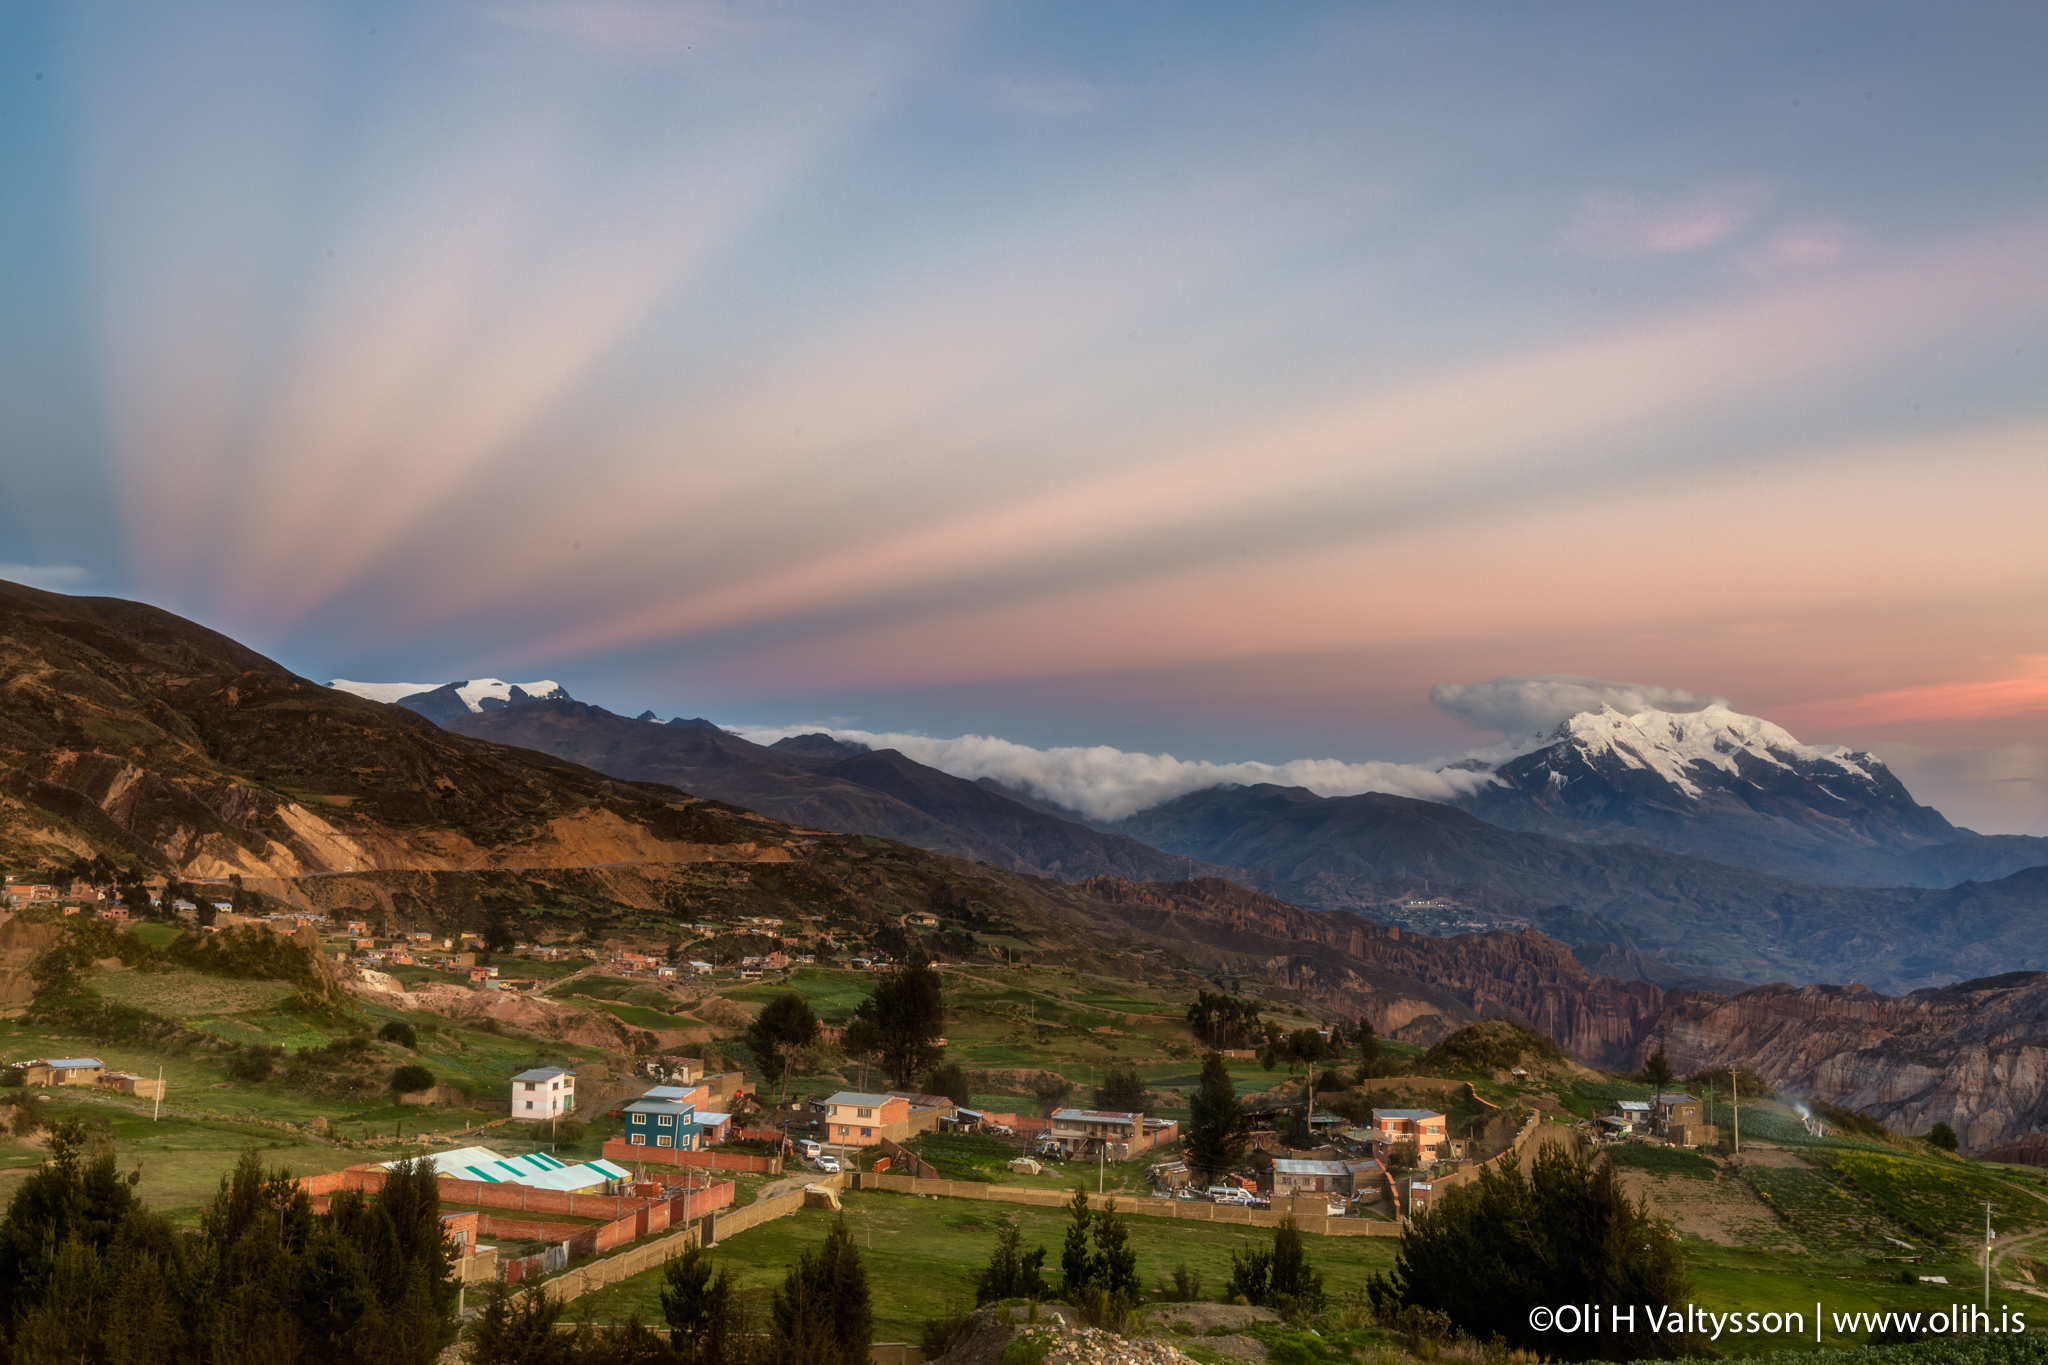 Small town with MT.Illimani in the Backround